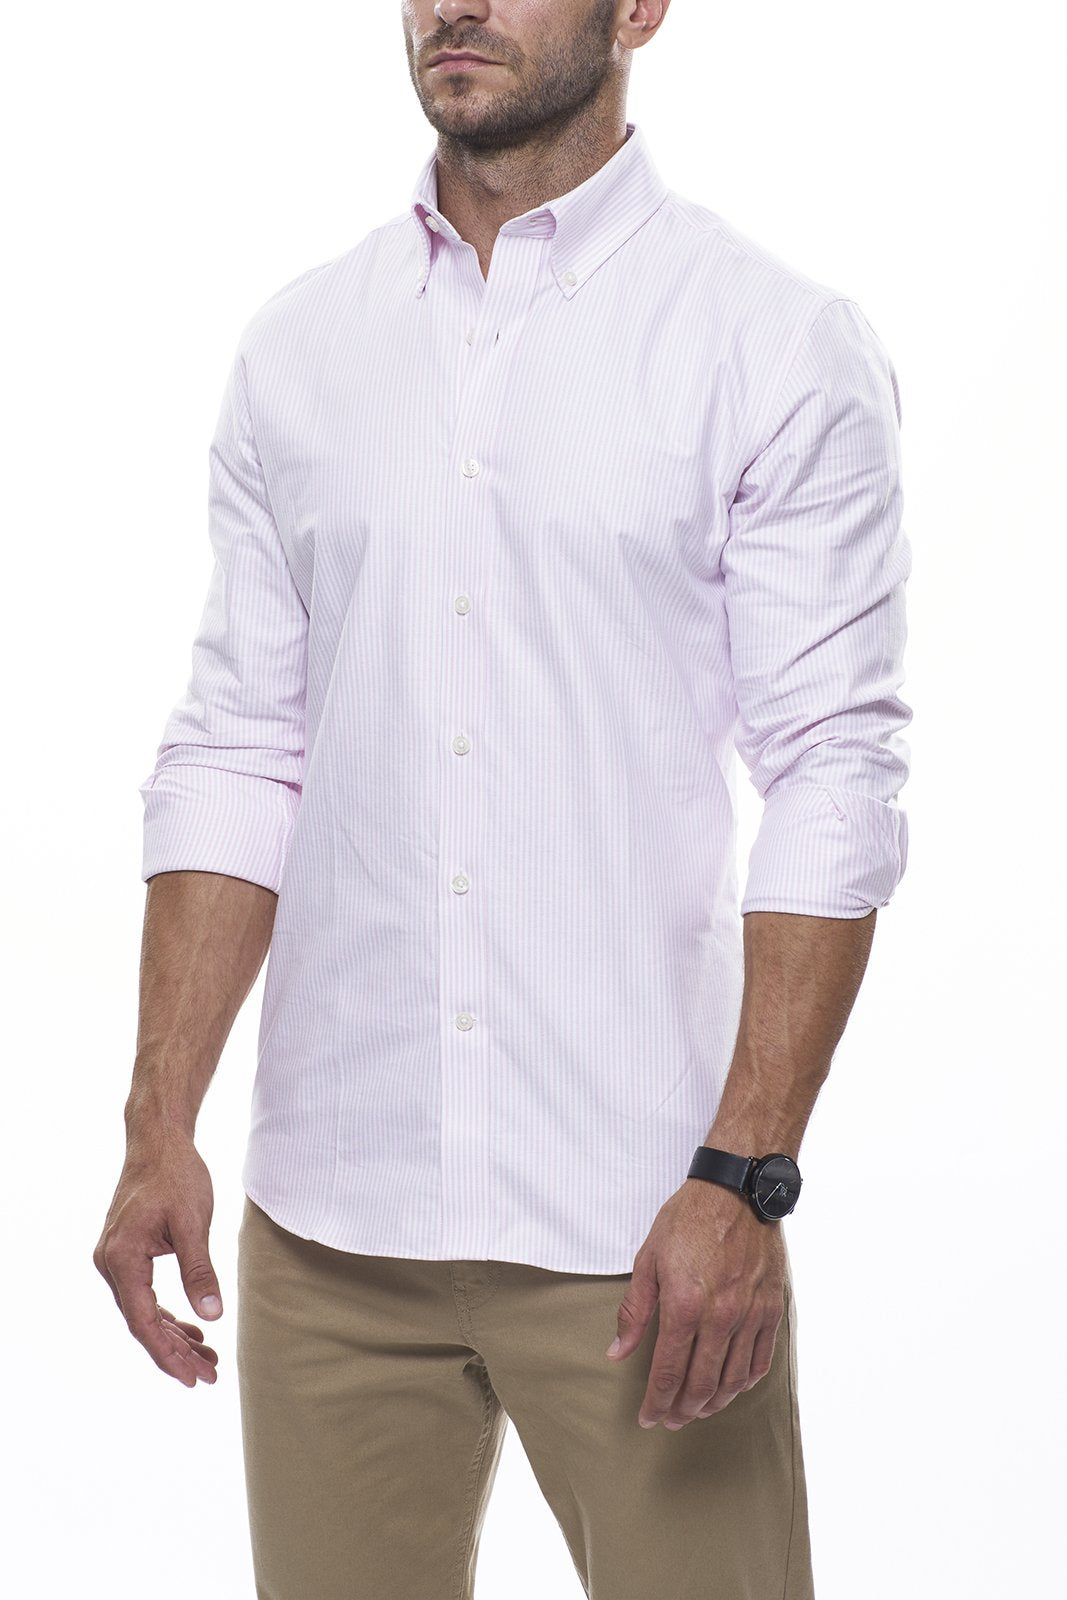 Light Pink Striped Oxford: Modified-Spread Collar, French Cuff